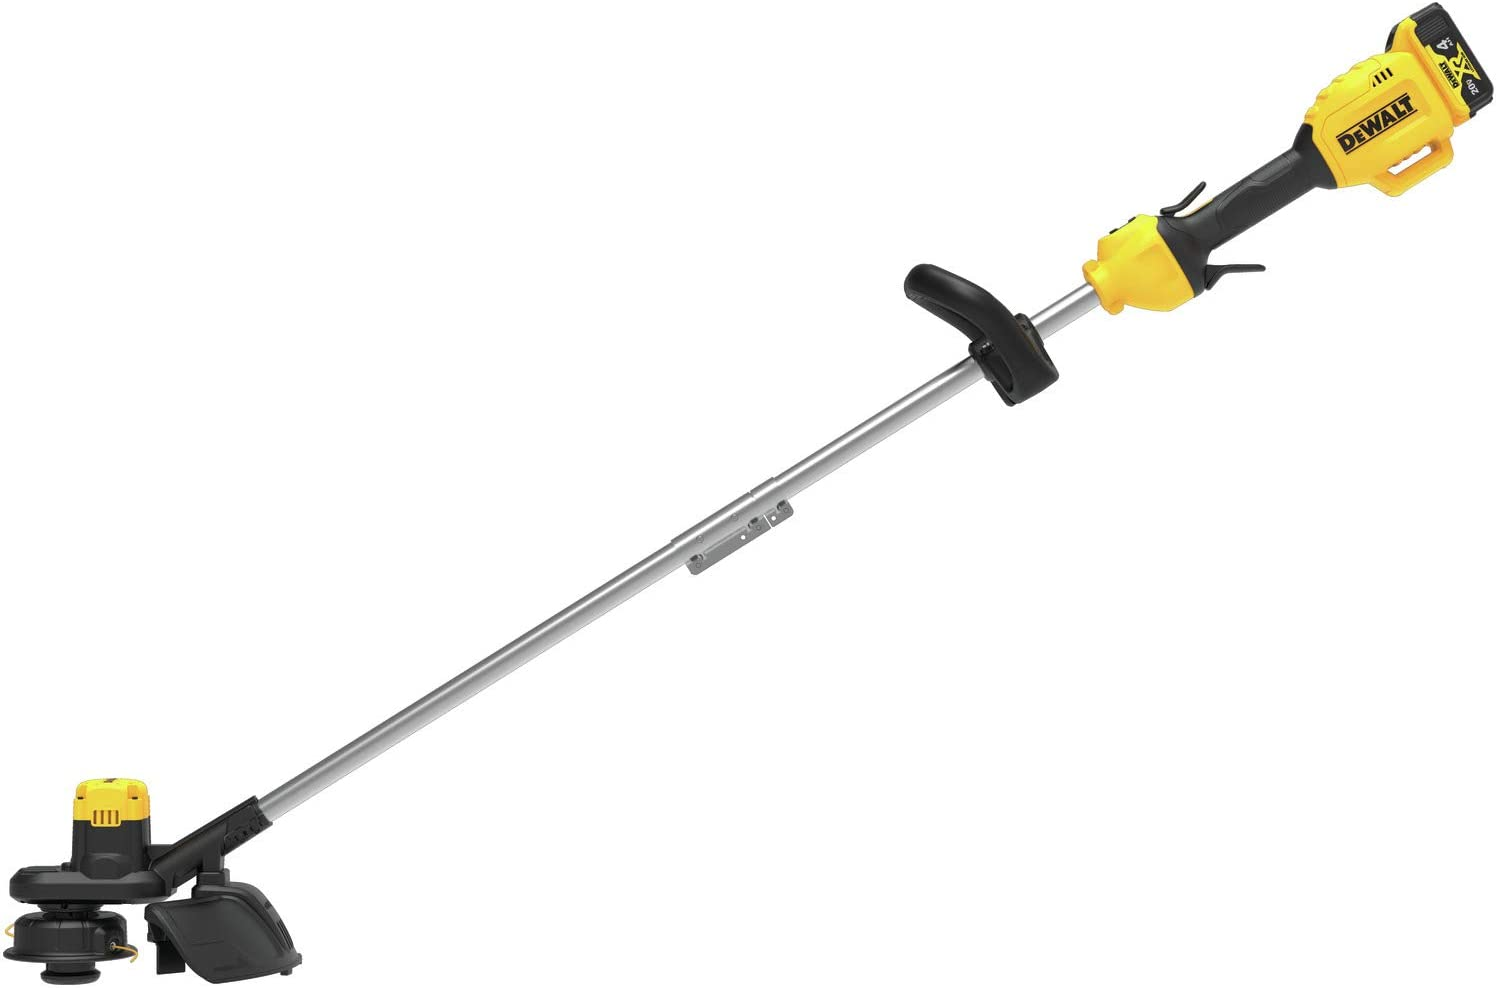 Dewalt String Trimmer, 13-Inch